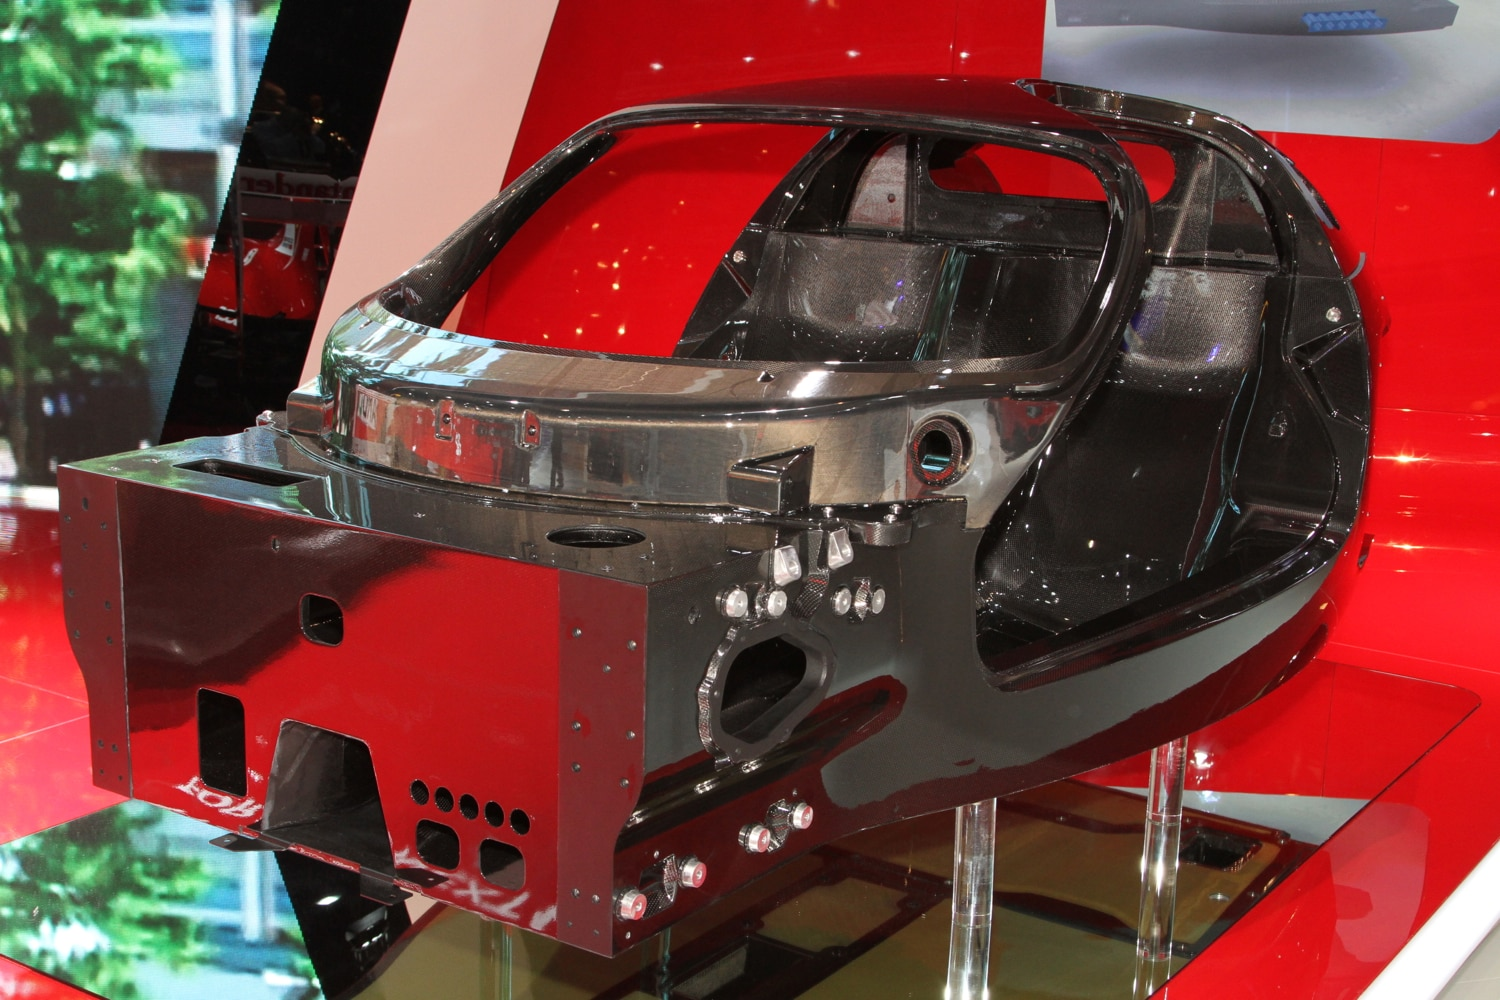 Ferrari Supercar Carbon Monocoque Front View1